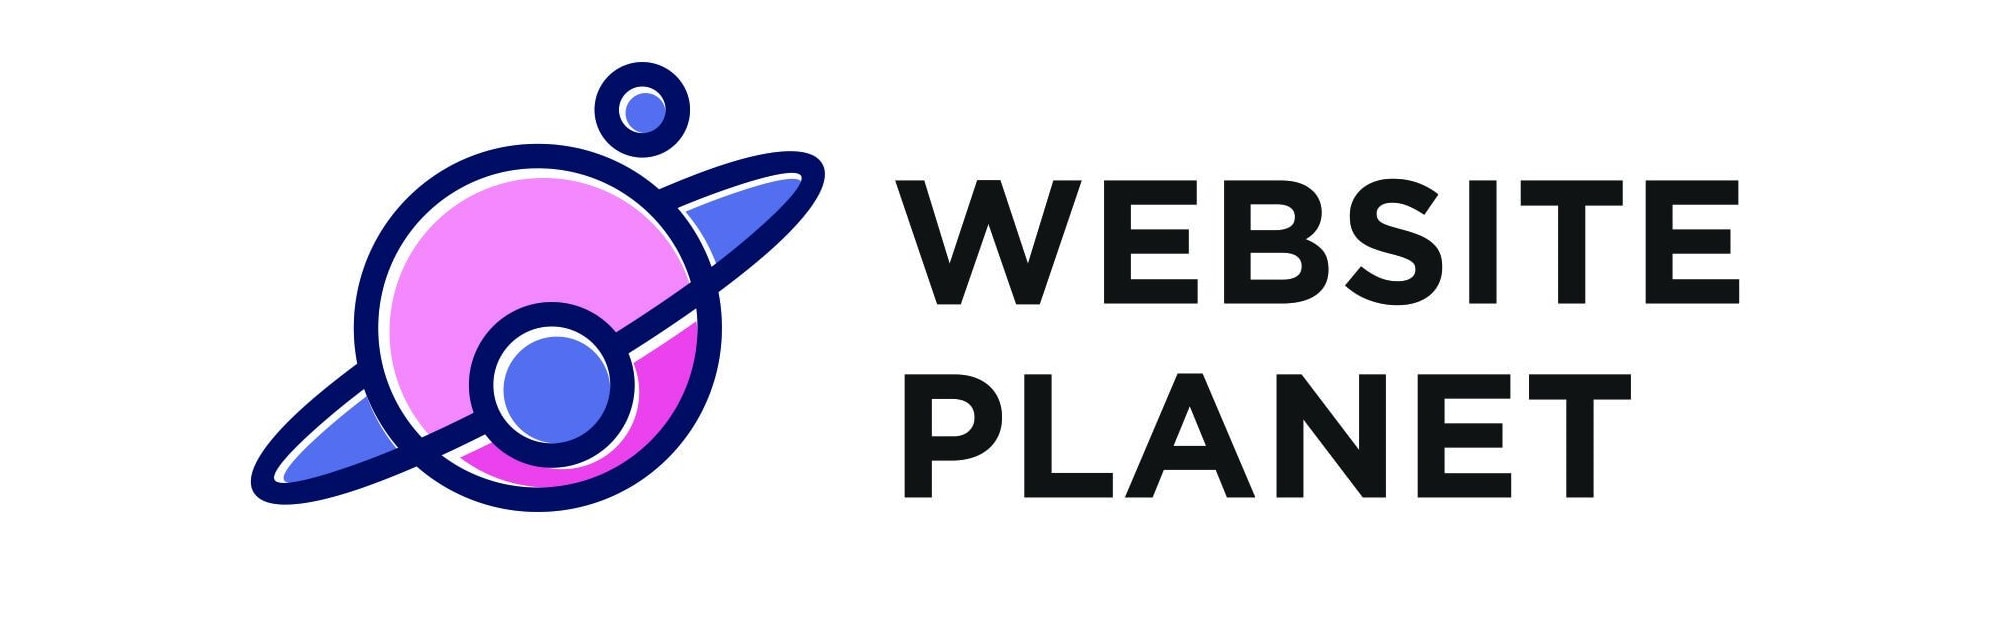 Website Planet logo sample